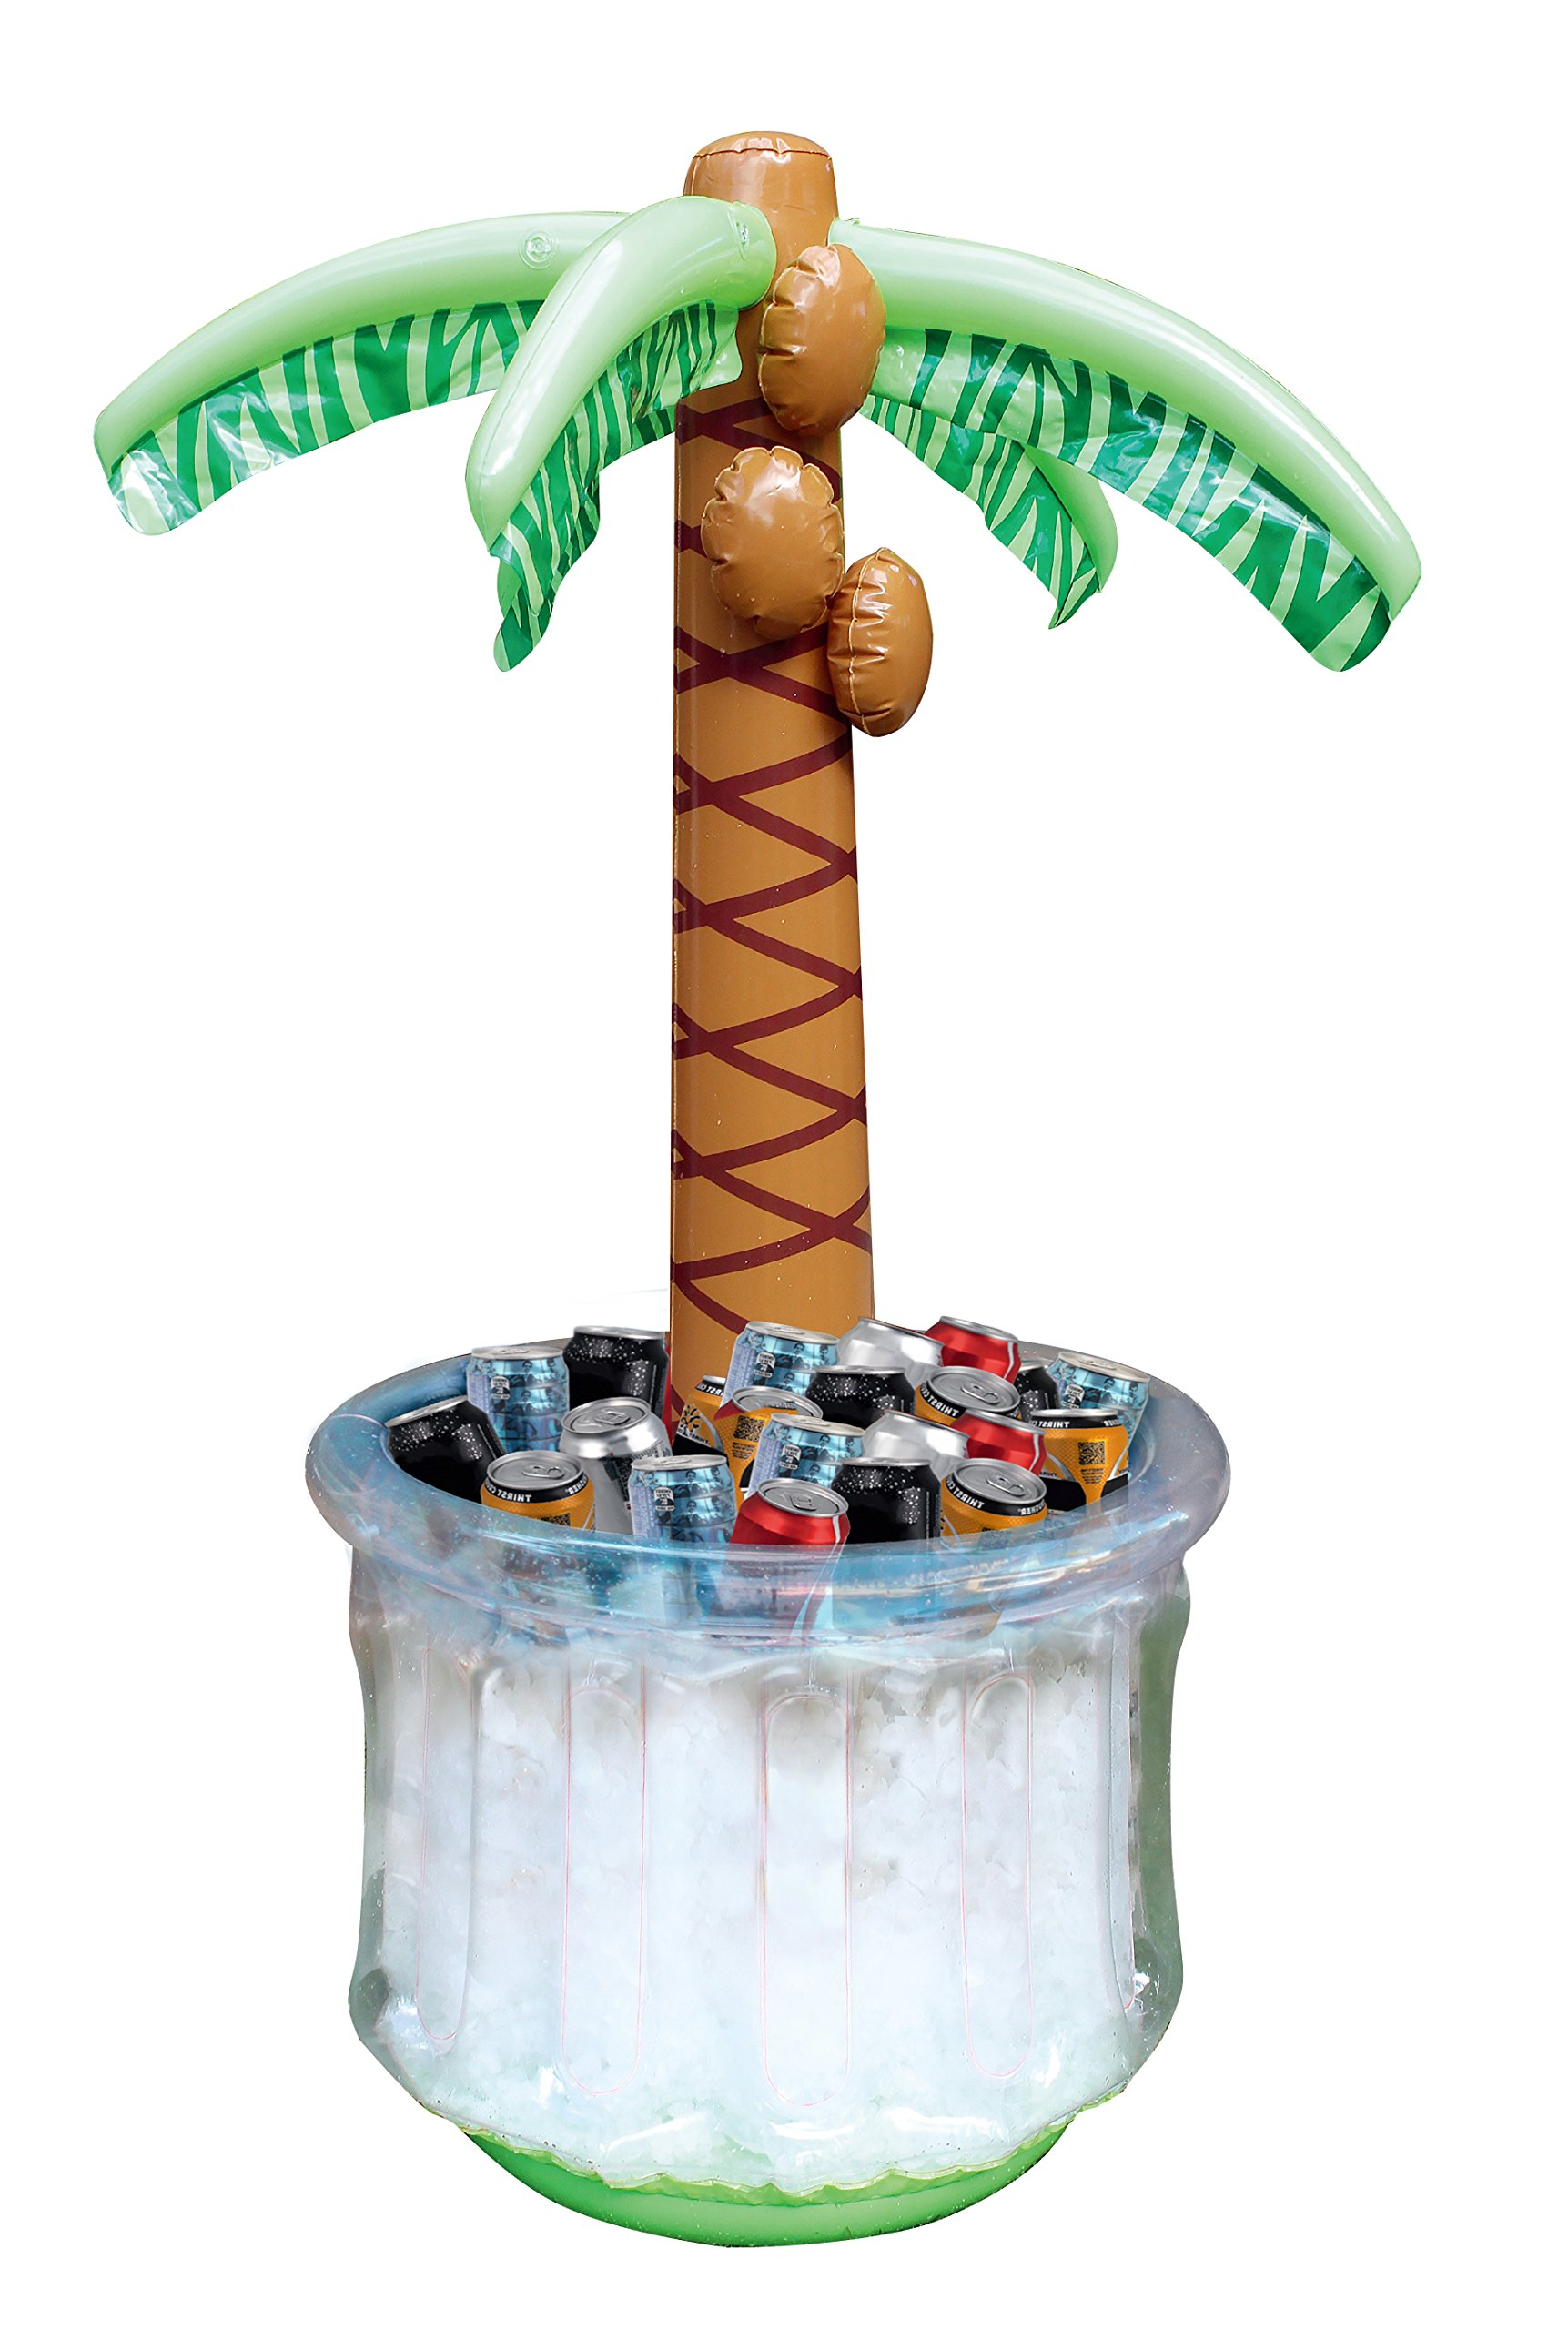 JOYIN 60'' Inflatable Palm Tree Cooler, beach theme party decor, party supplies for pool party and beach party by JOYIN